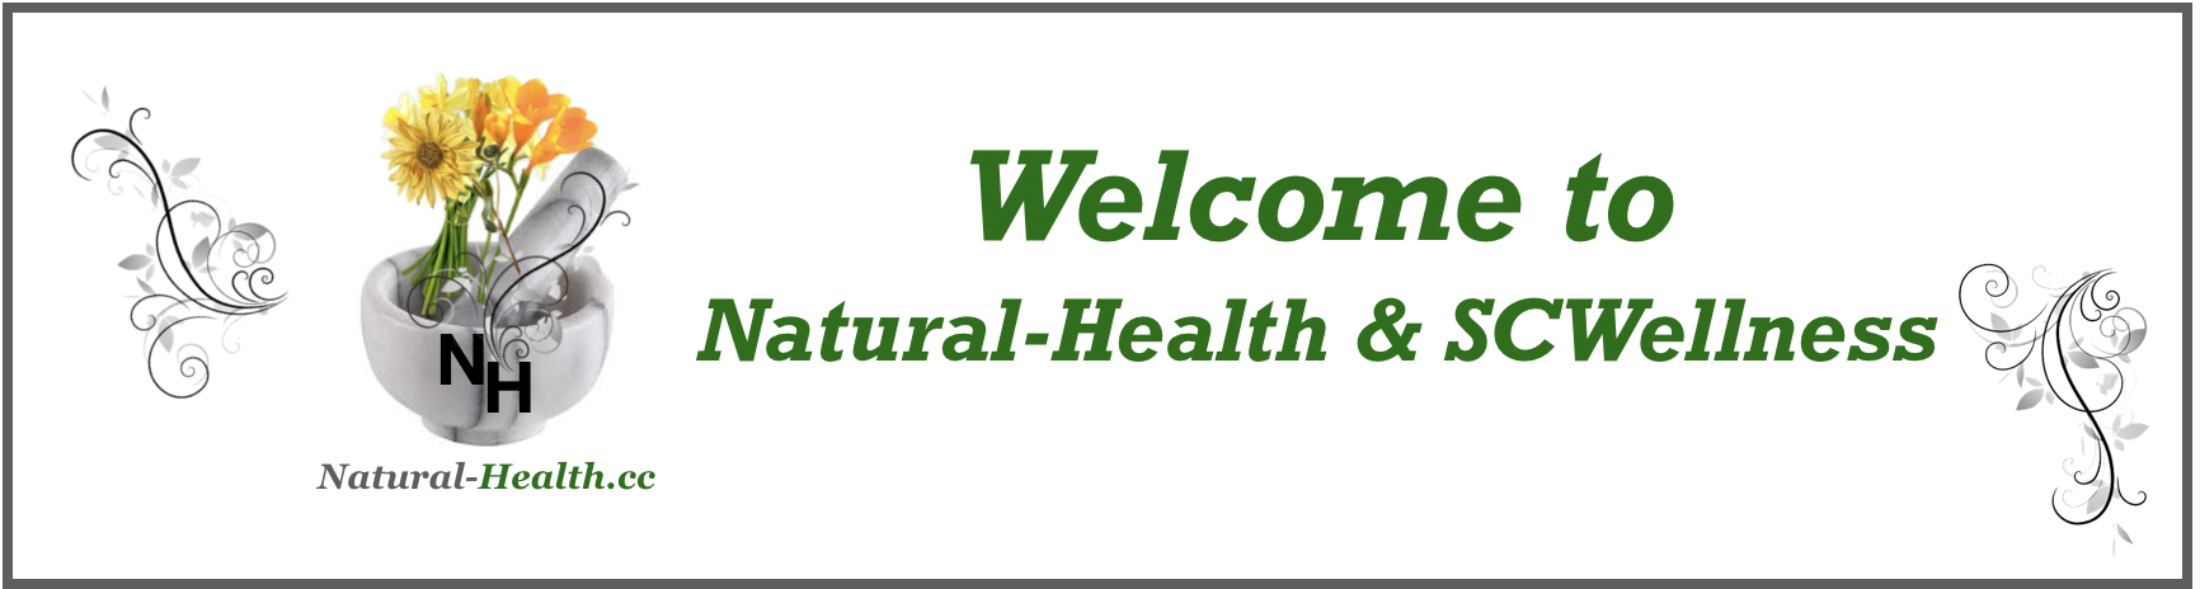 Natural-Health & SCWellness